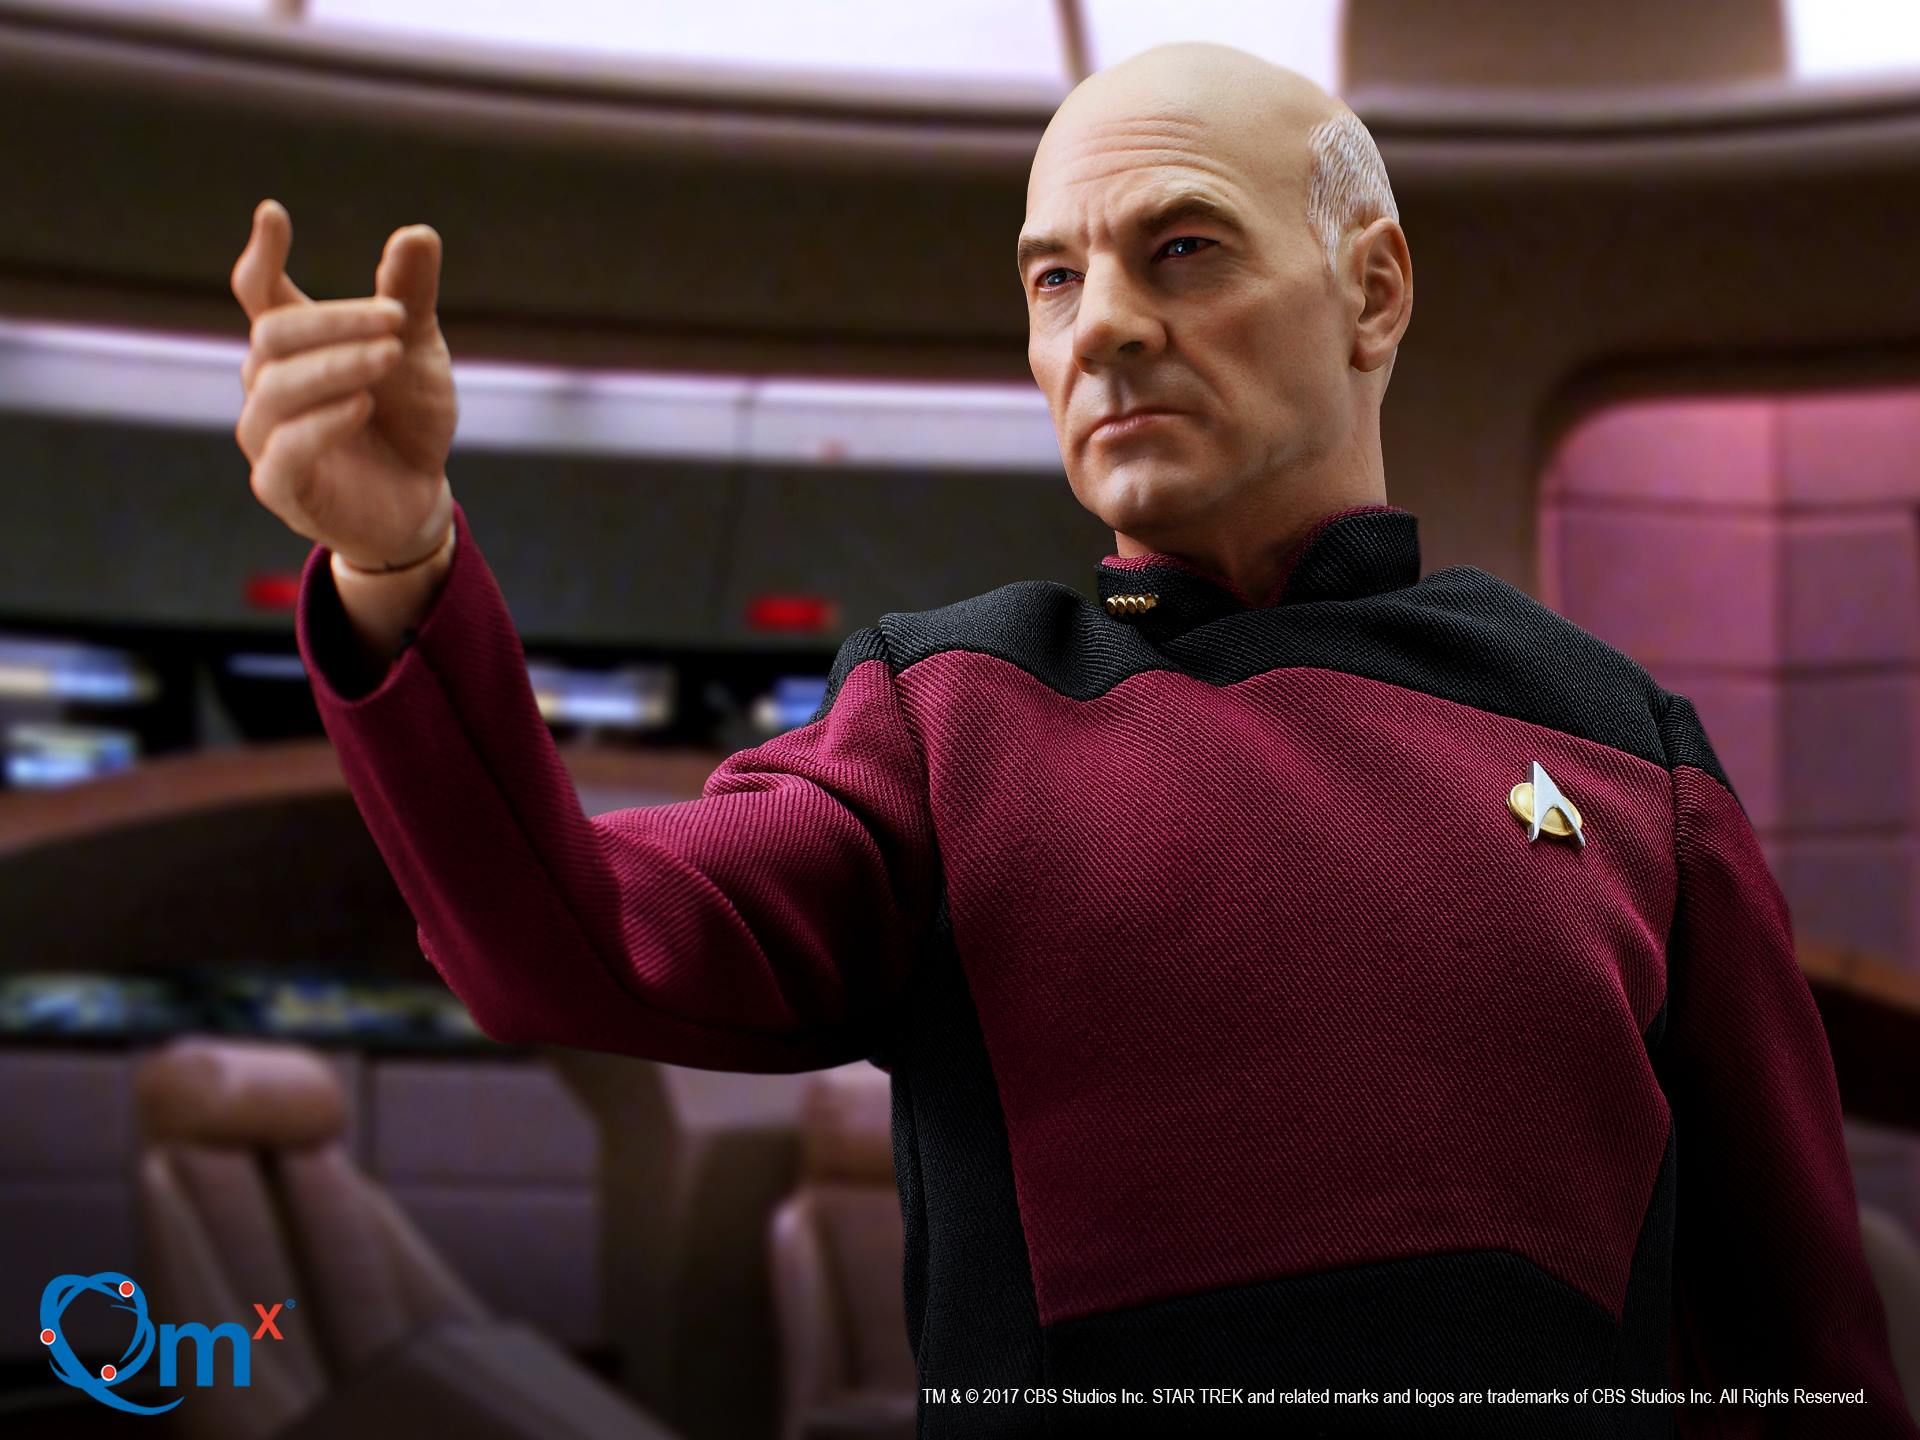 star trek captain picard